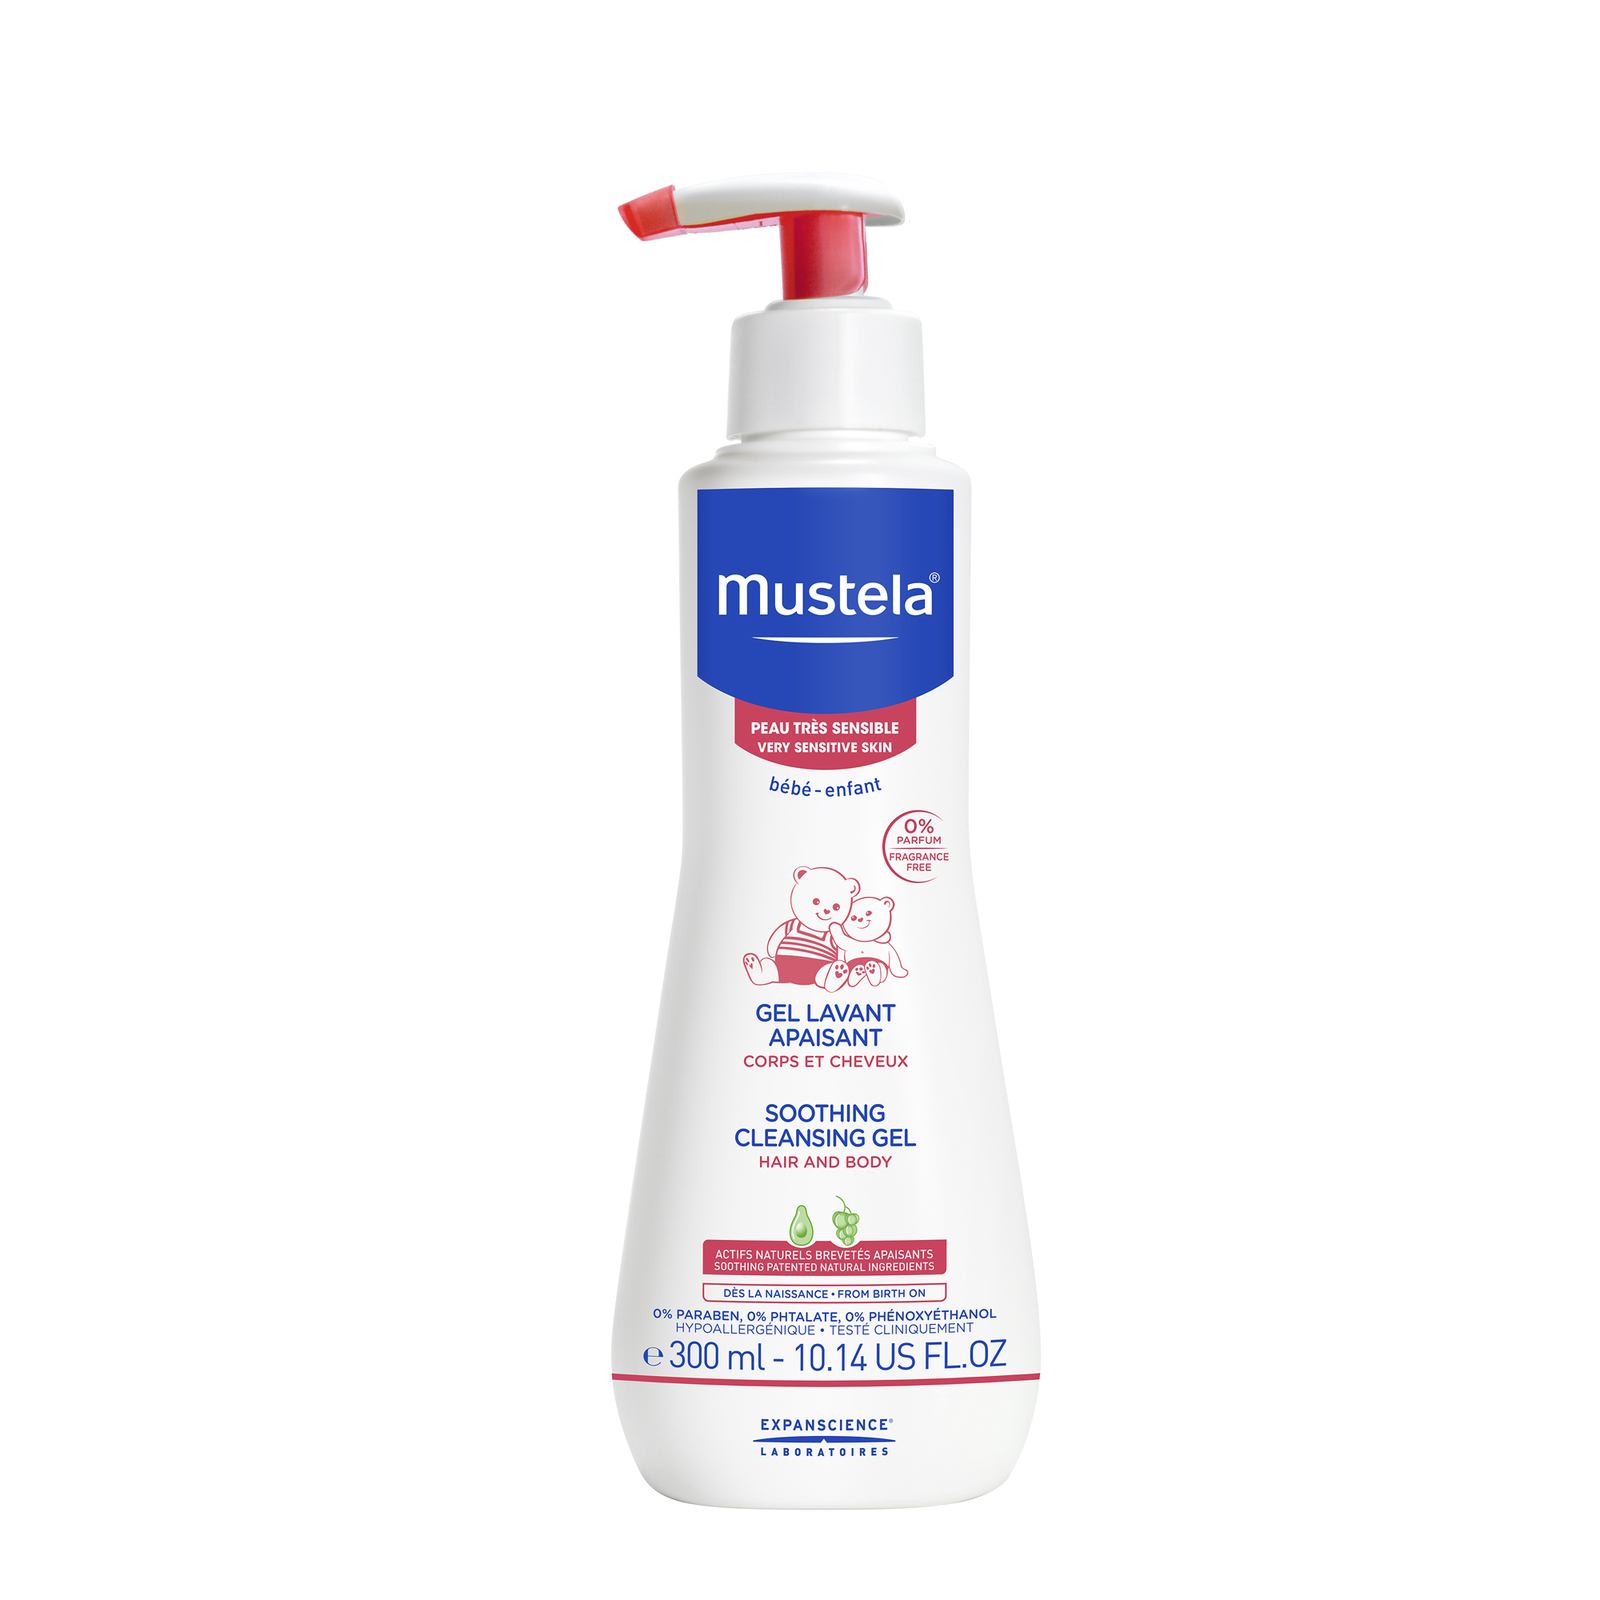 Mustela: Soothing Cleansing Gel - 300ml image